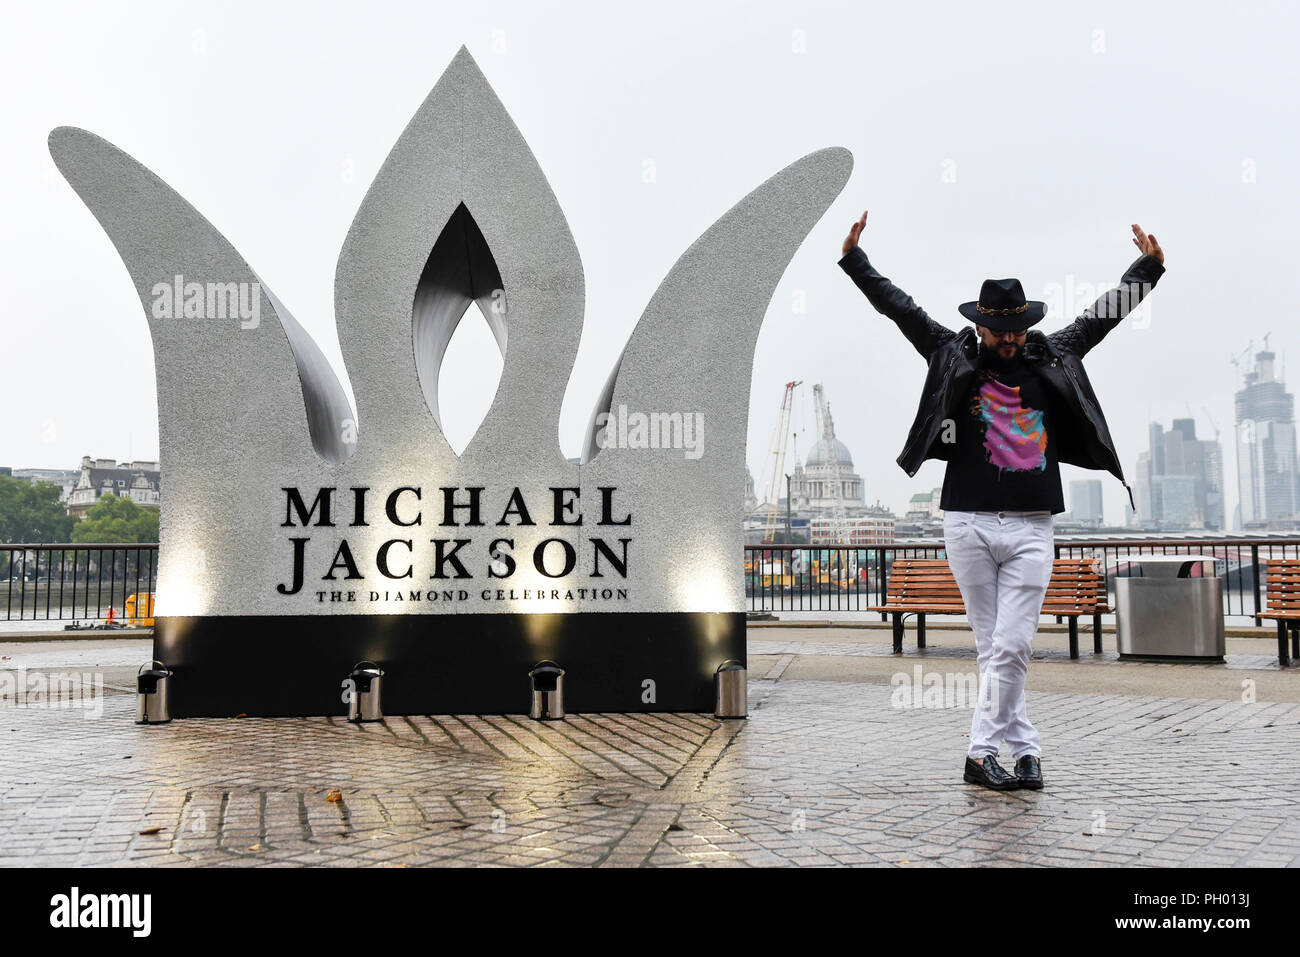 London, UK.  29 August 2018.  A Michael Jackson fans poses as a giant 13 foot jewelled crown is unveiled at a photocall on the South Bank on what would have been Michael Jackson's birthday.  Sony Music, in collaboration with the Estate of Michael Jackson, unveiled the installation to celebrate the King of Pop's Diamond Birthday.  Credit: Stephen Chung / Alamy Live News - Stock Image